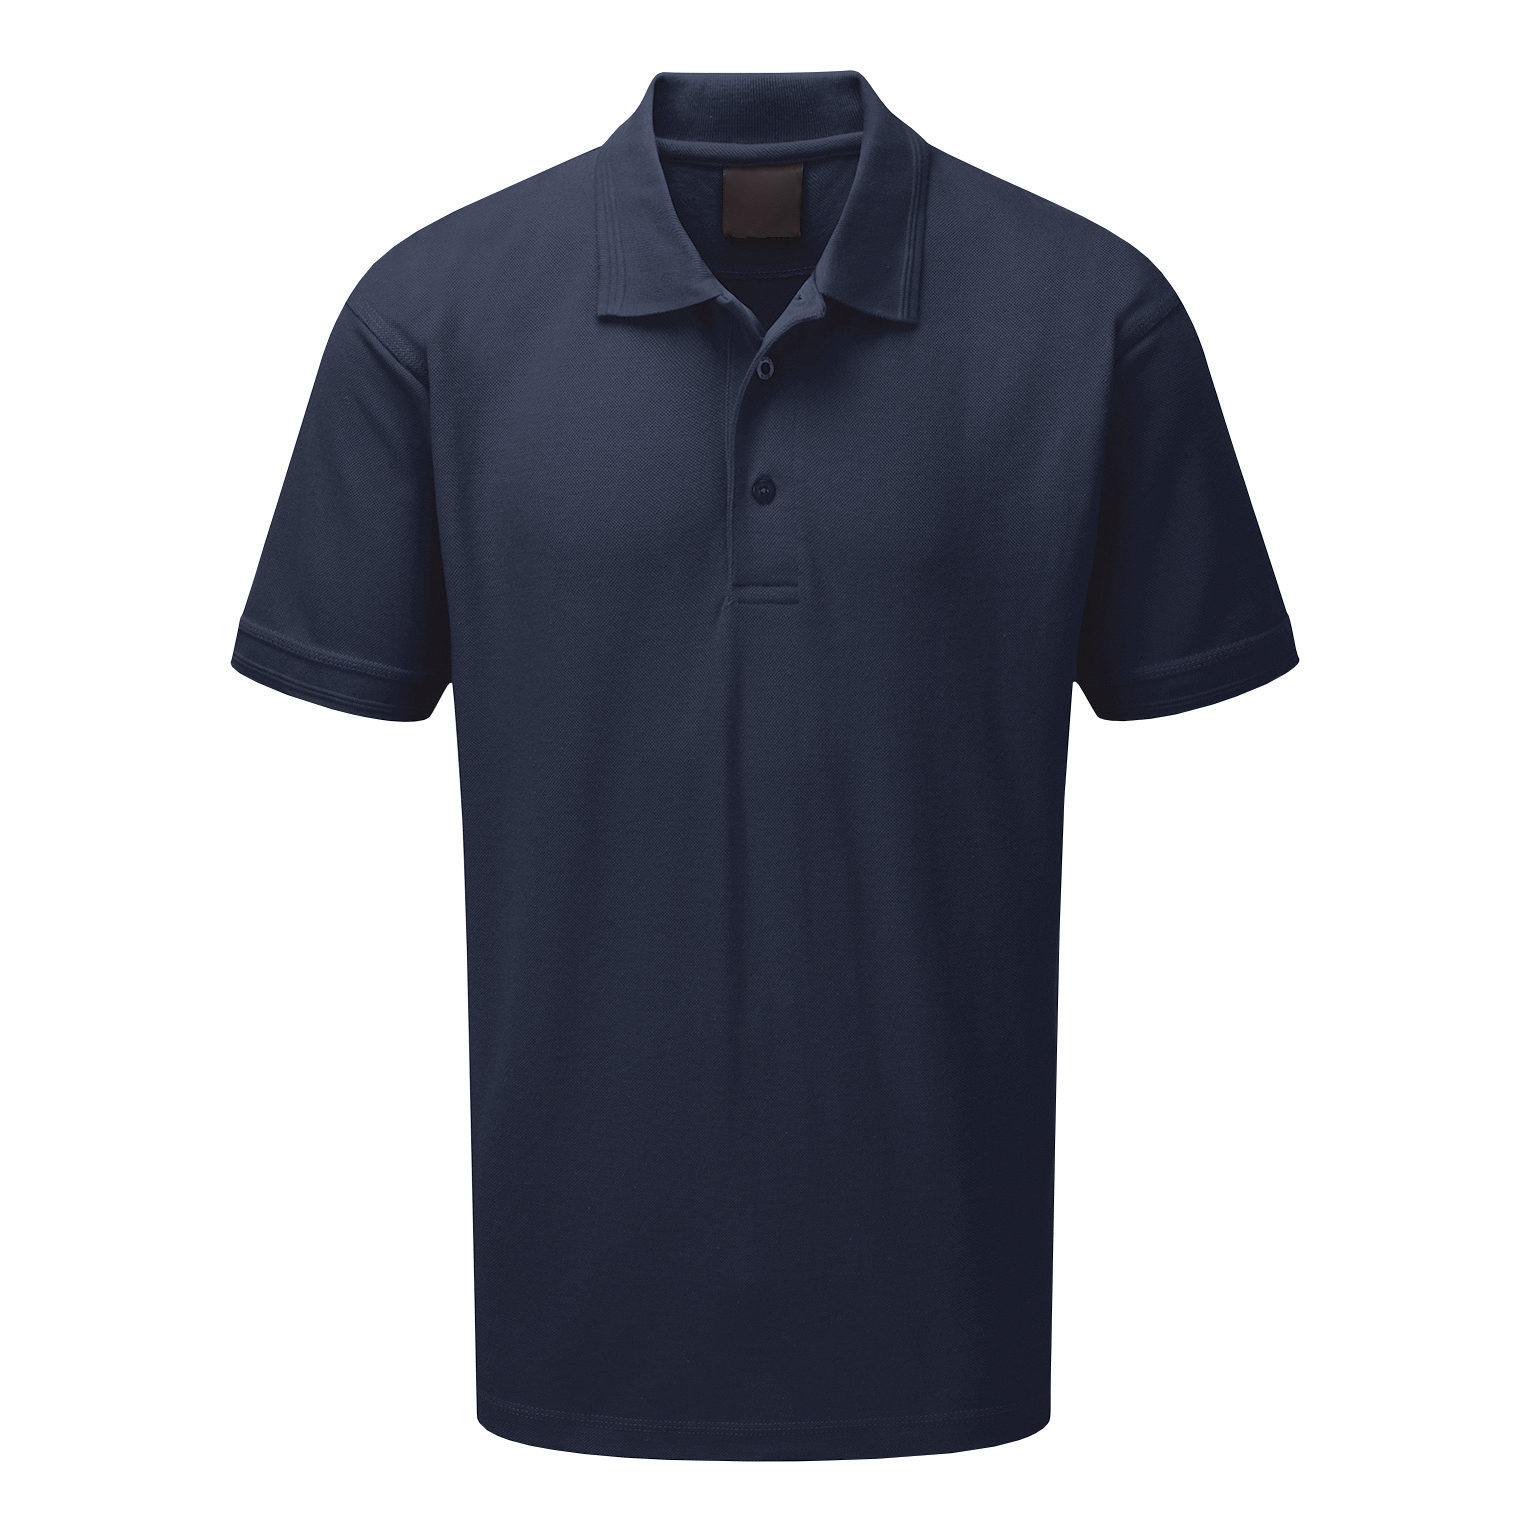 Supertouch Polo Shirt Classic Polycotton Small Navy Ref 56CN1 *Approx 3 Day Leadtime*